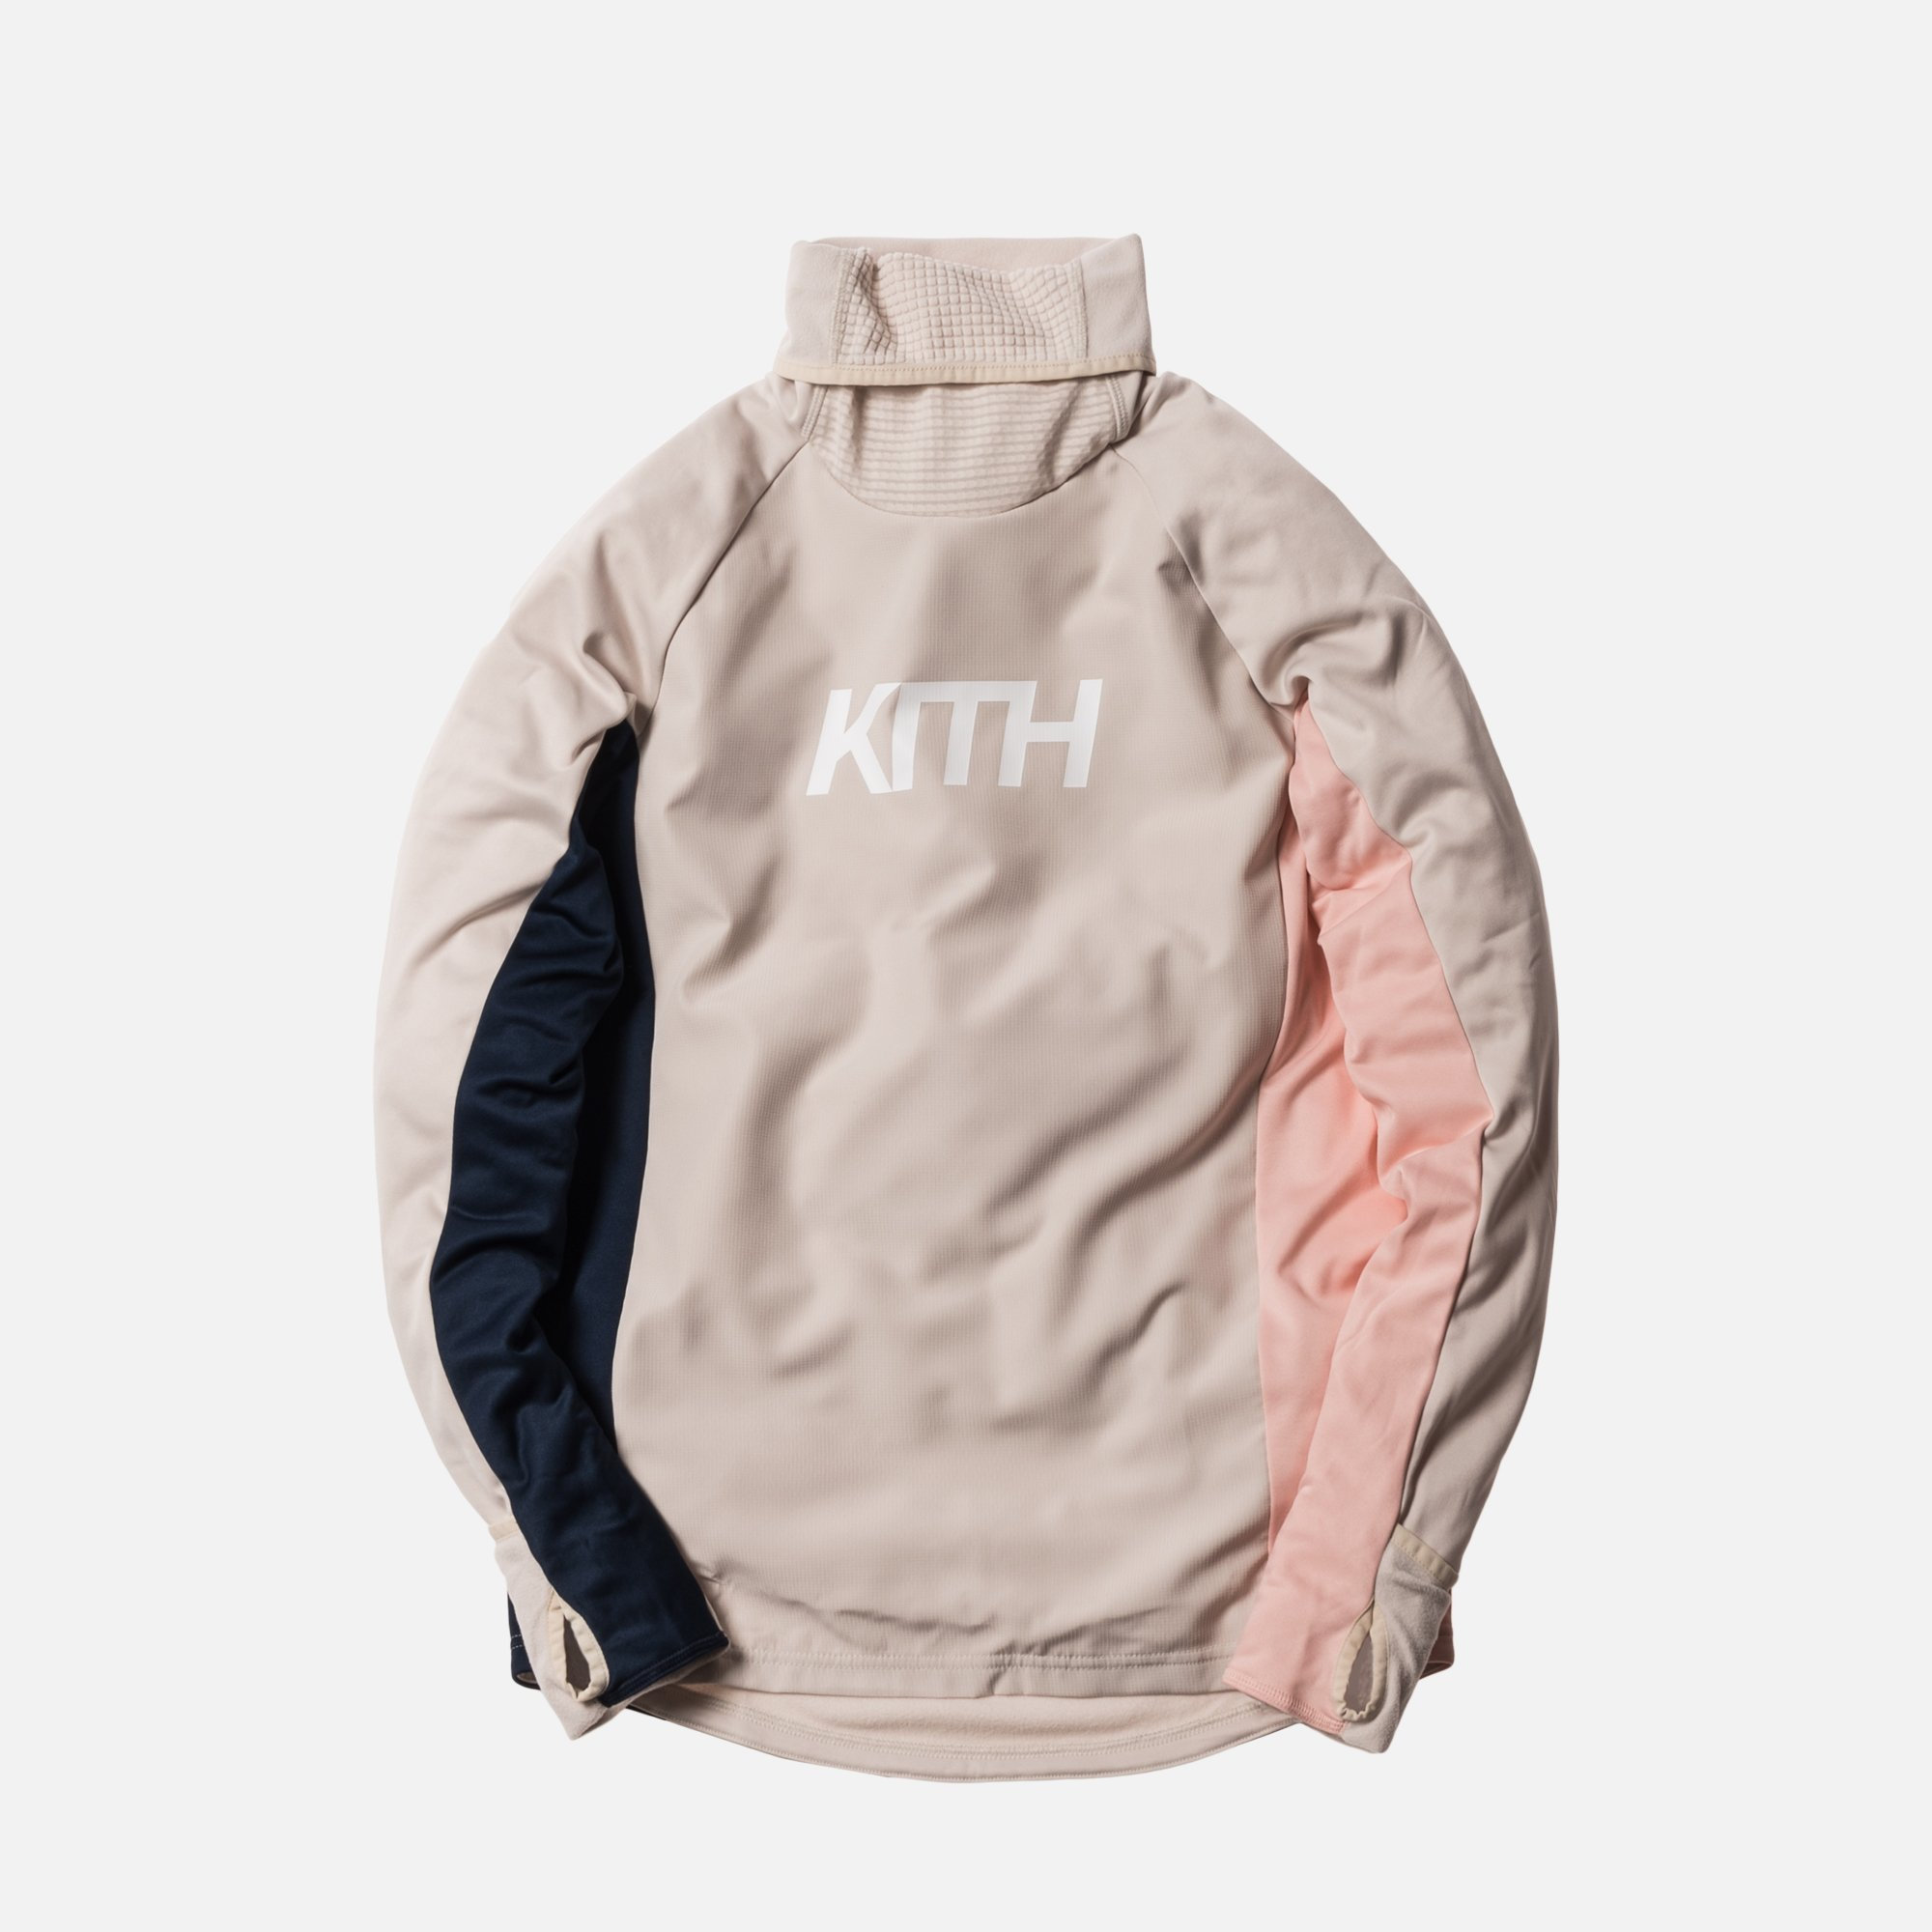 detailed look 533b6 29e41 Kith x Adidas Soccer Funnel Pullover